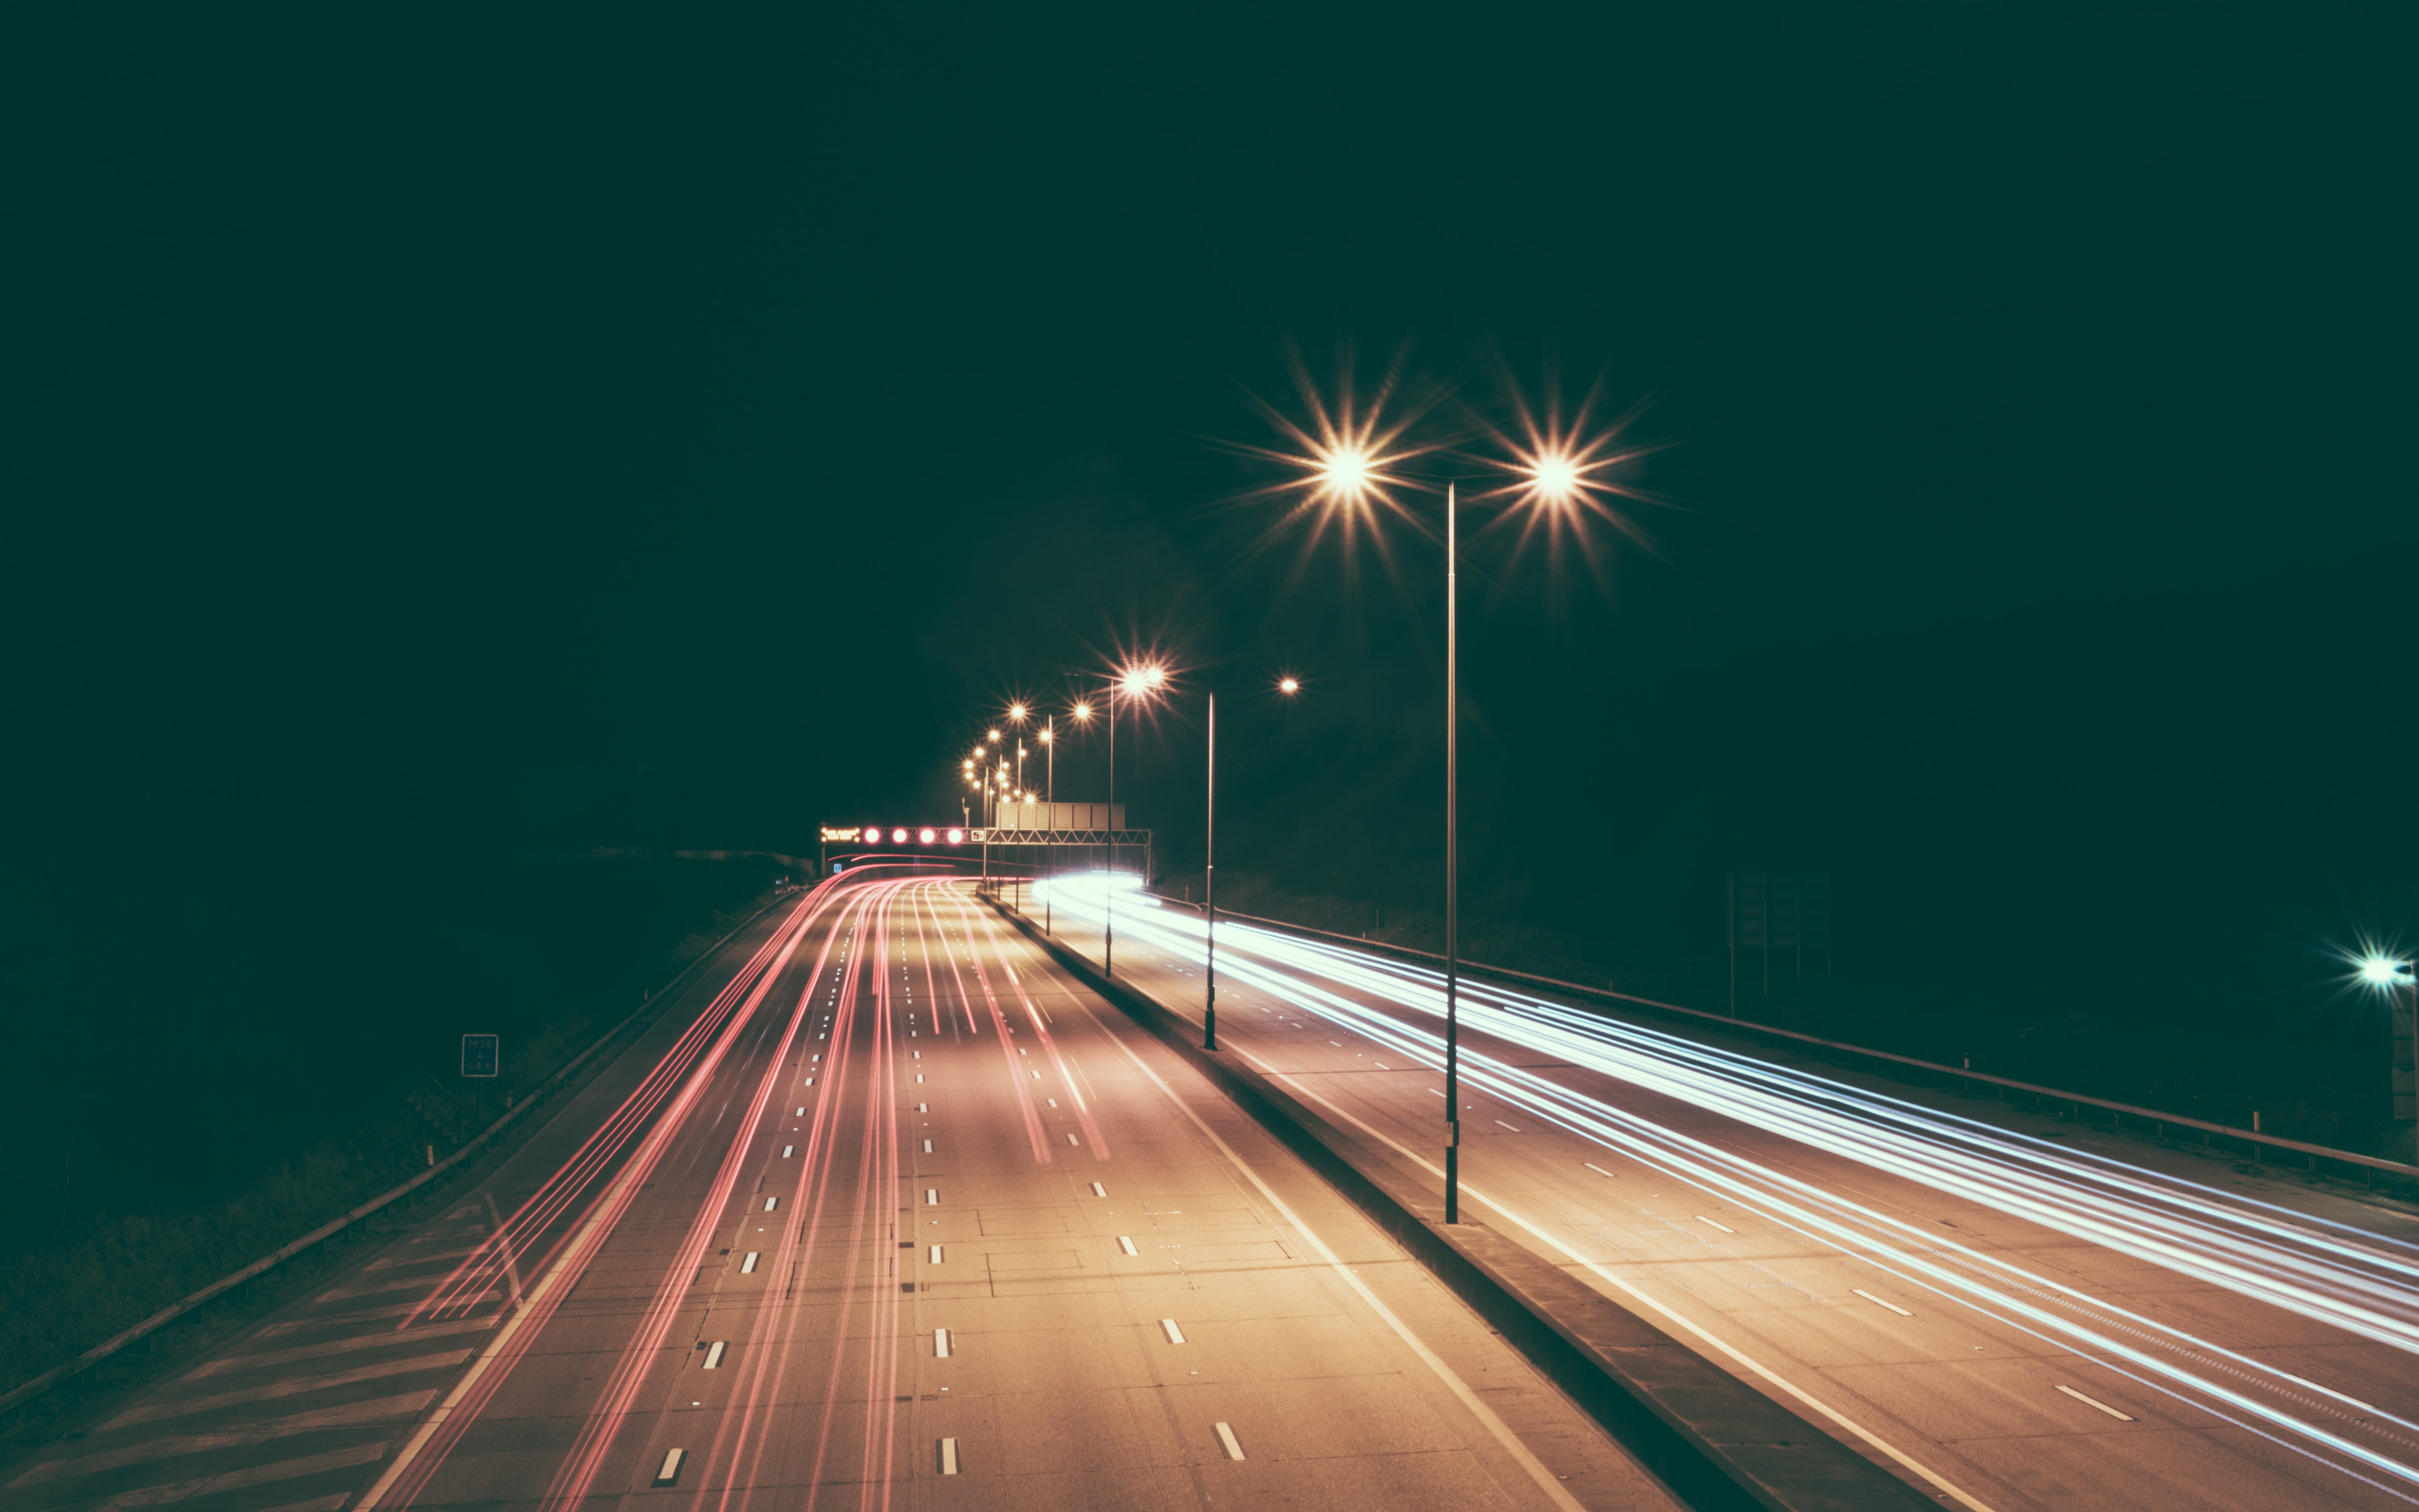 timelapse photography of road lights